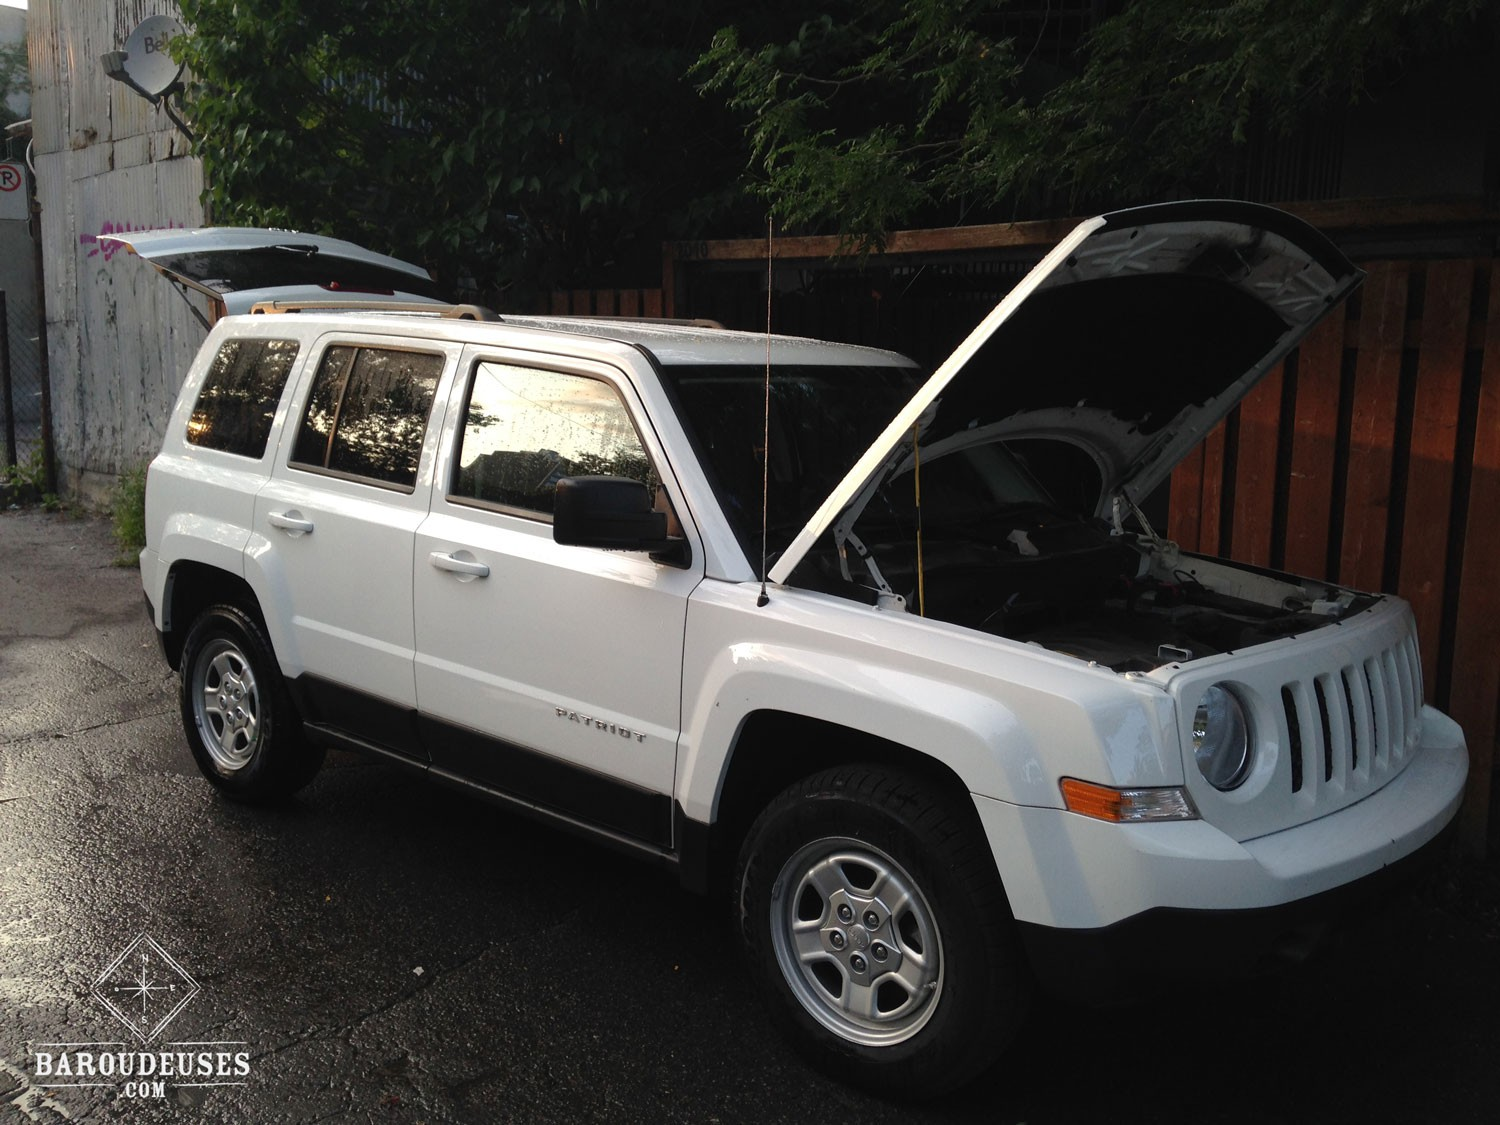 W-Jeep patriot baroudeuses